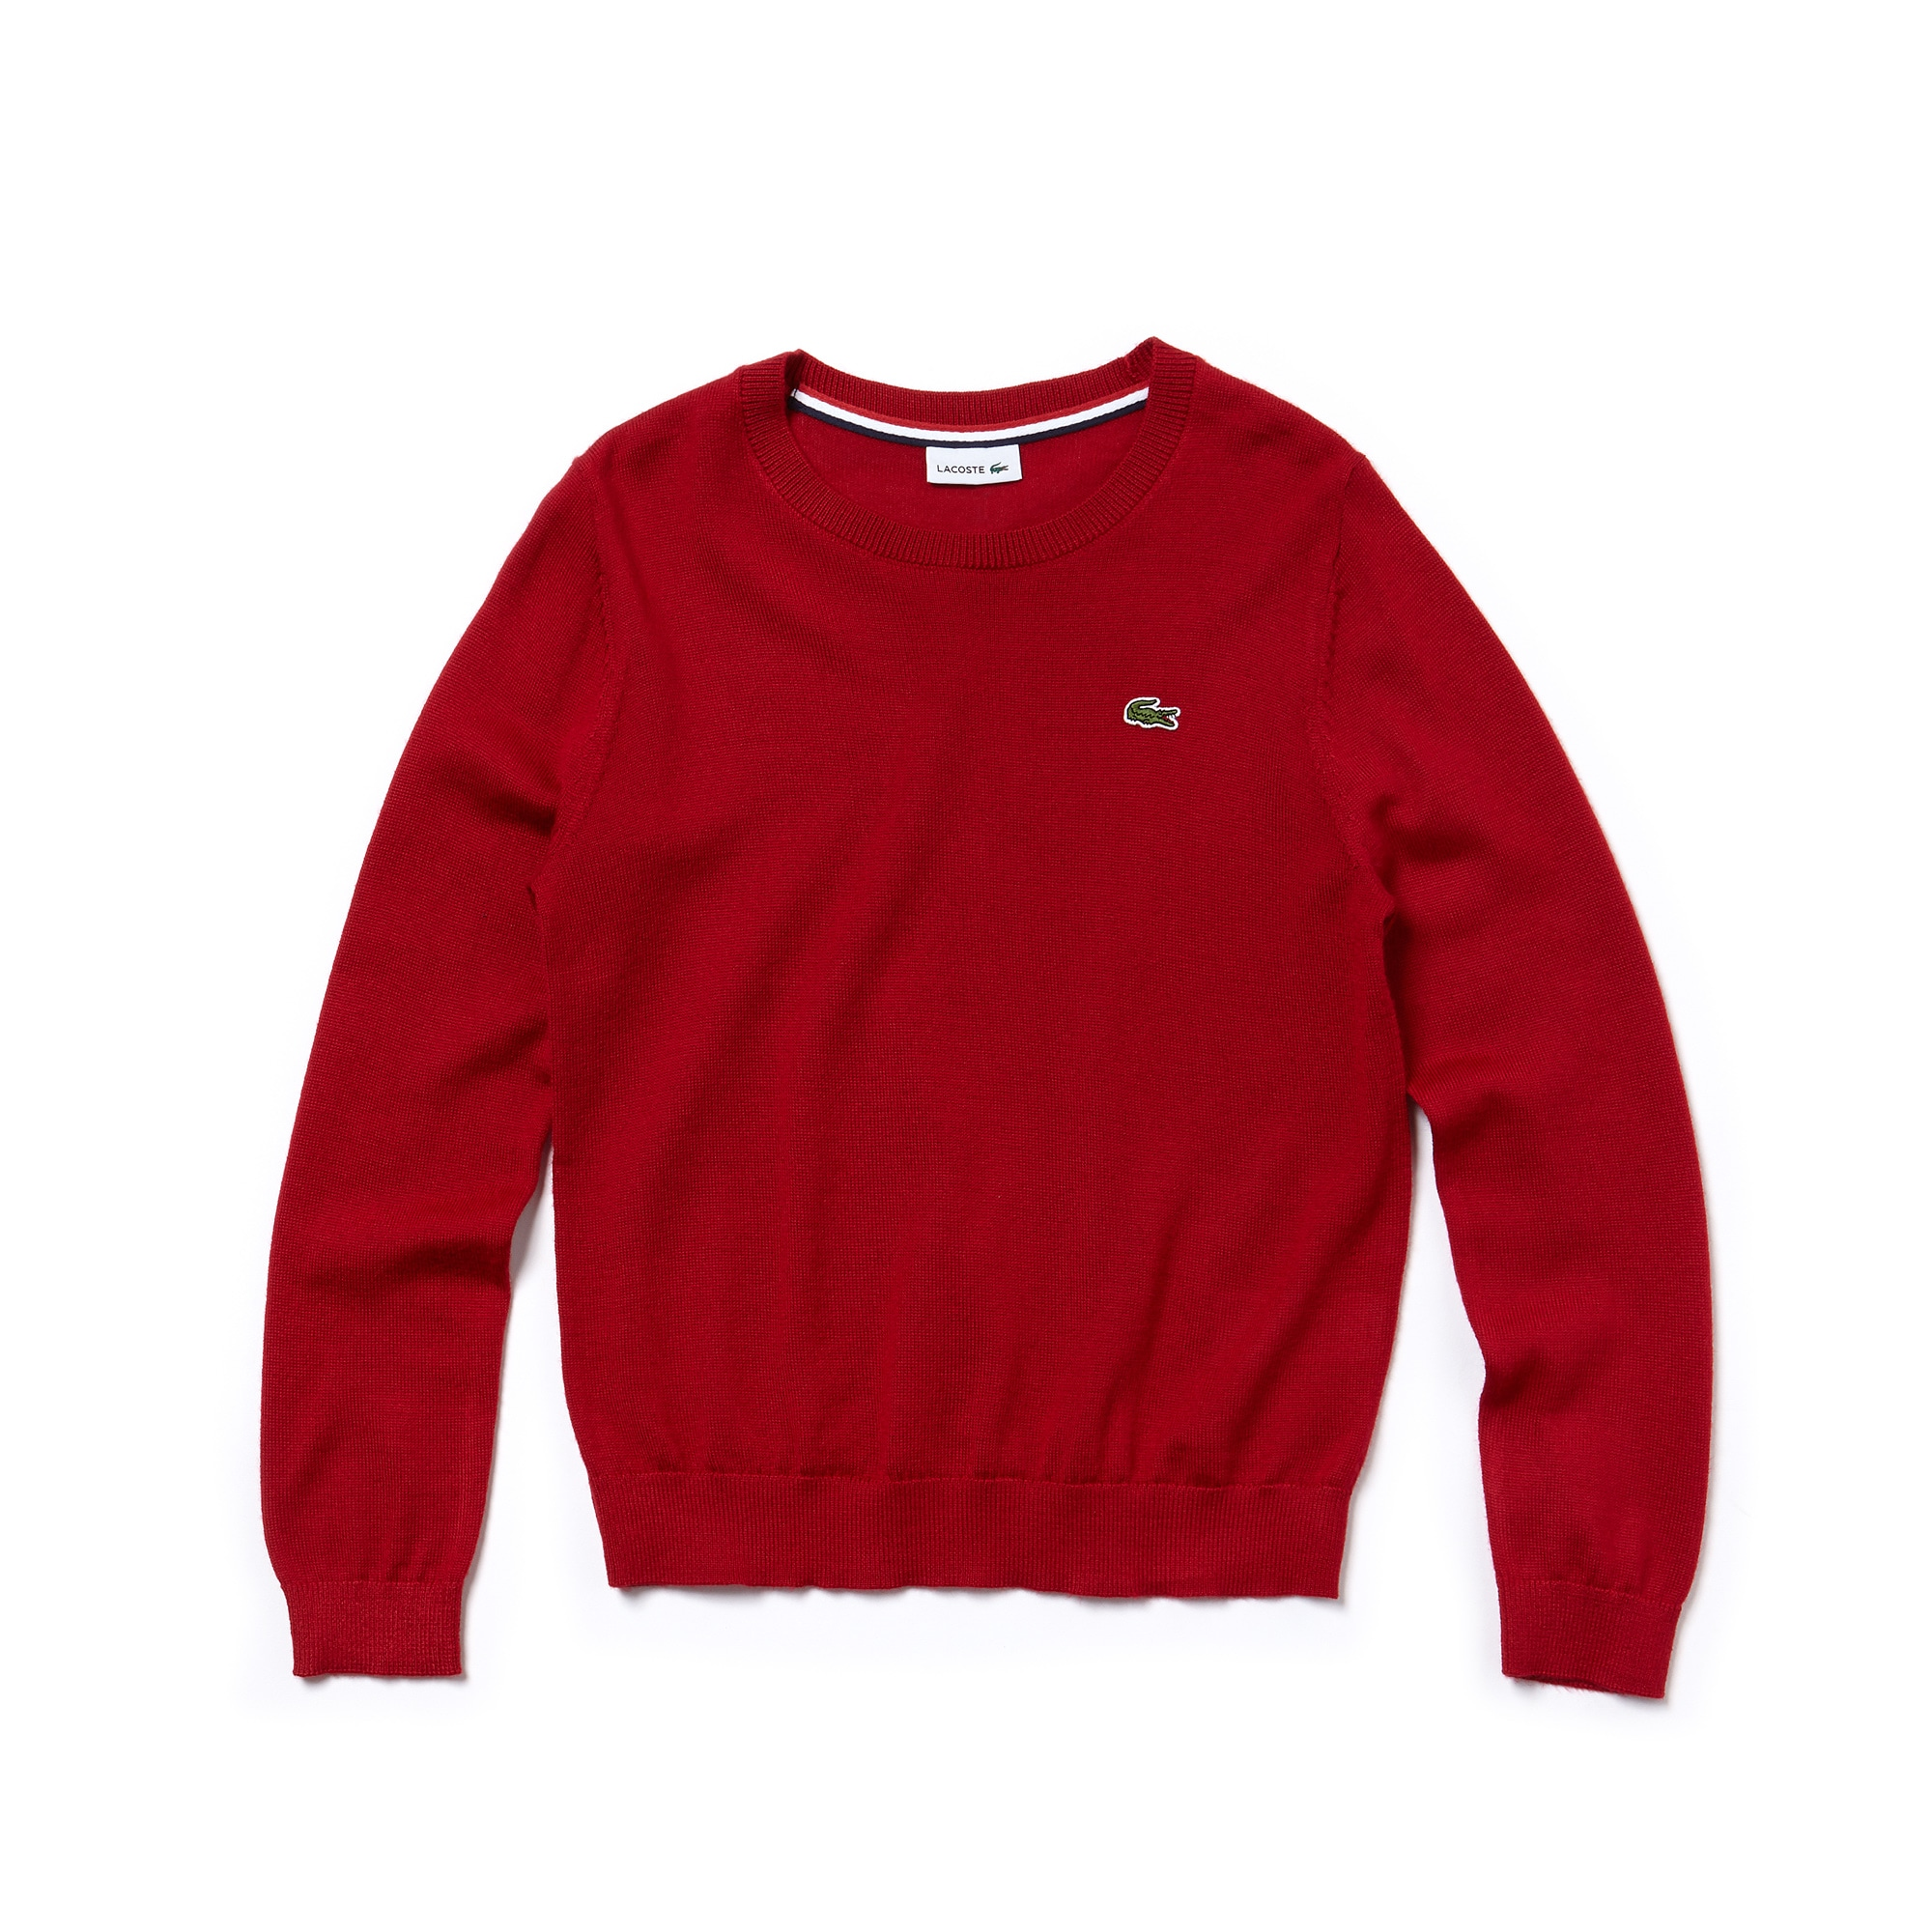 Boys' Crew Neck Wool Blend Jersey Sweater